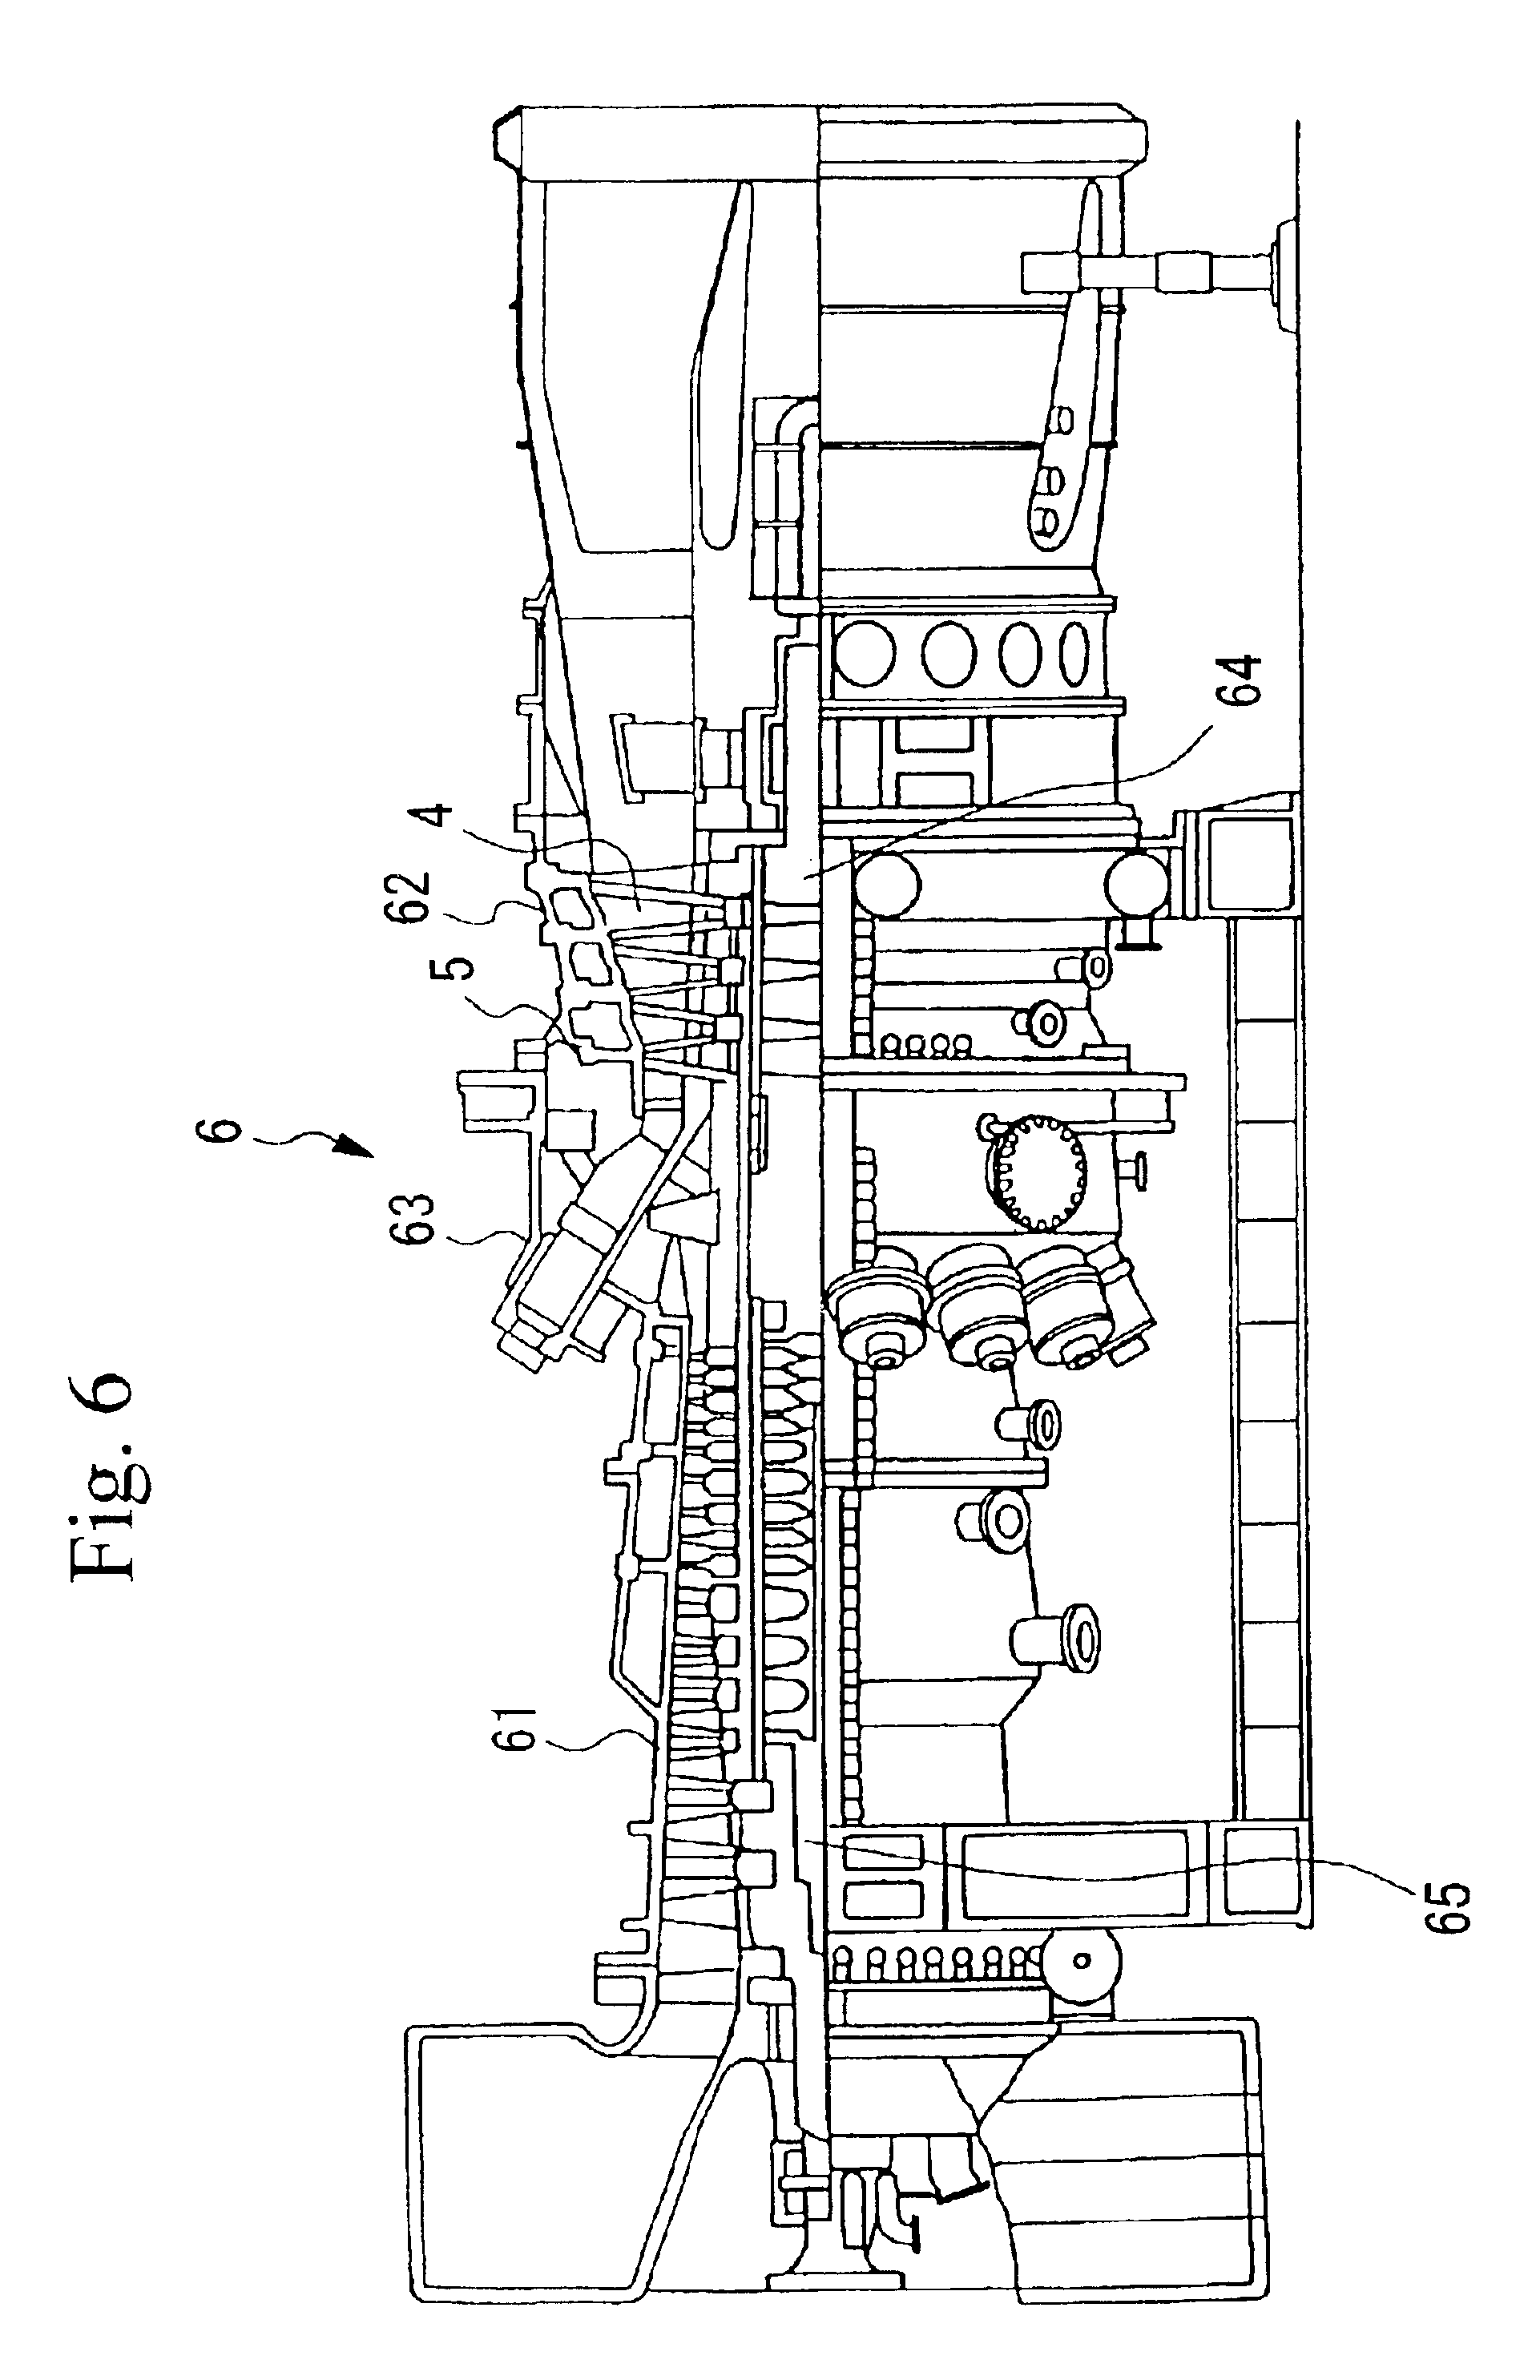 Patent US Thermal barrier coating material gas turbine